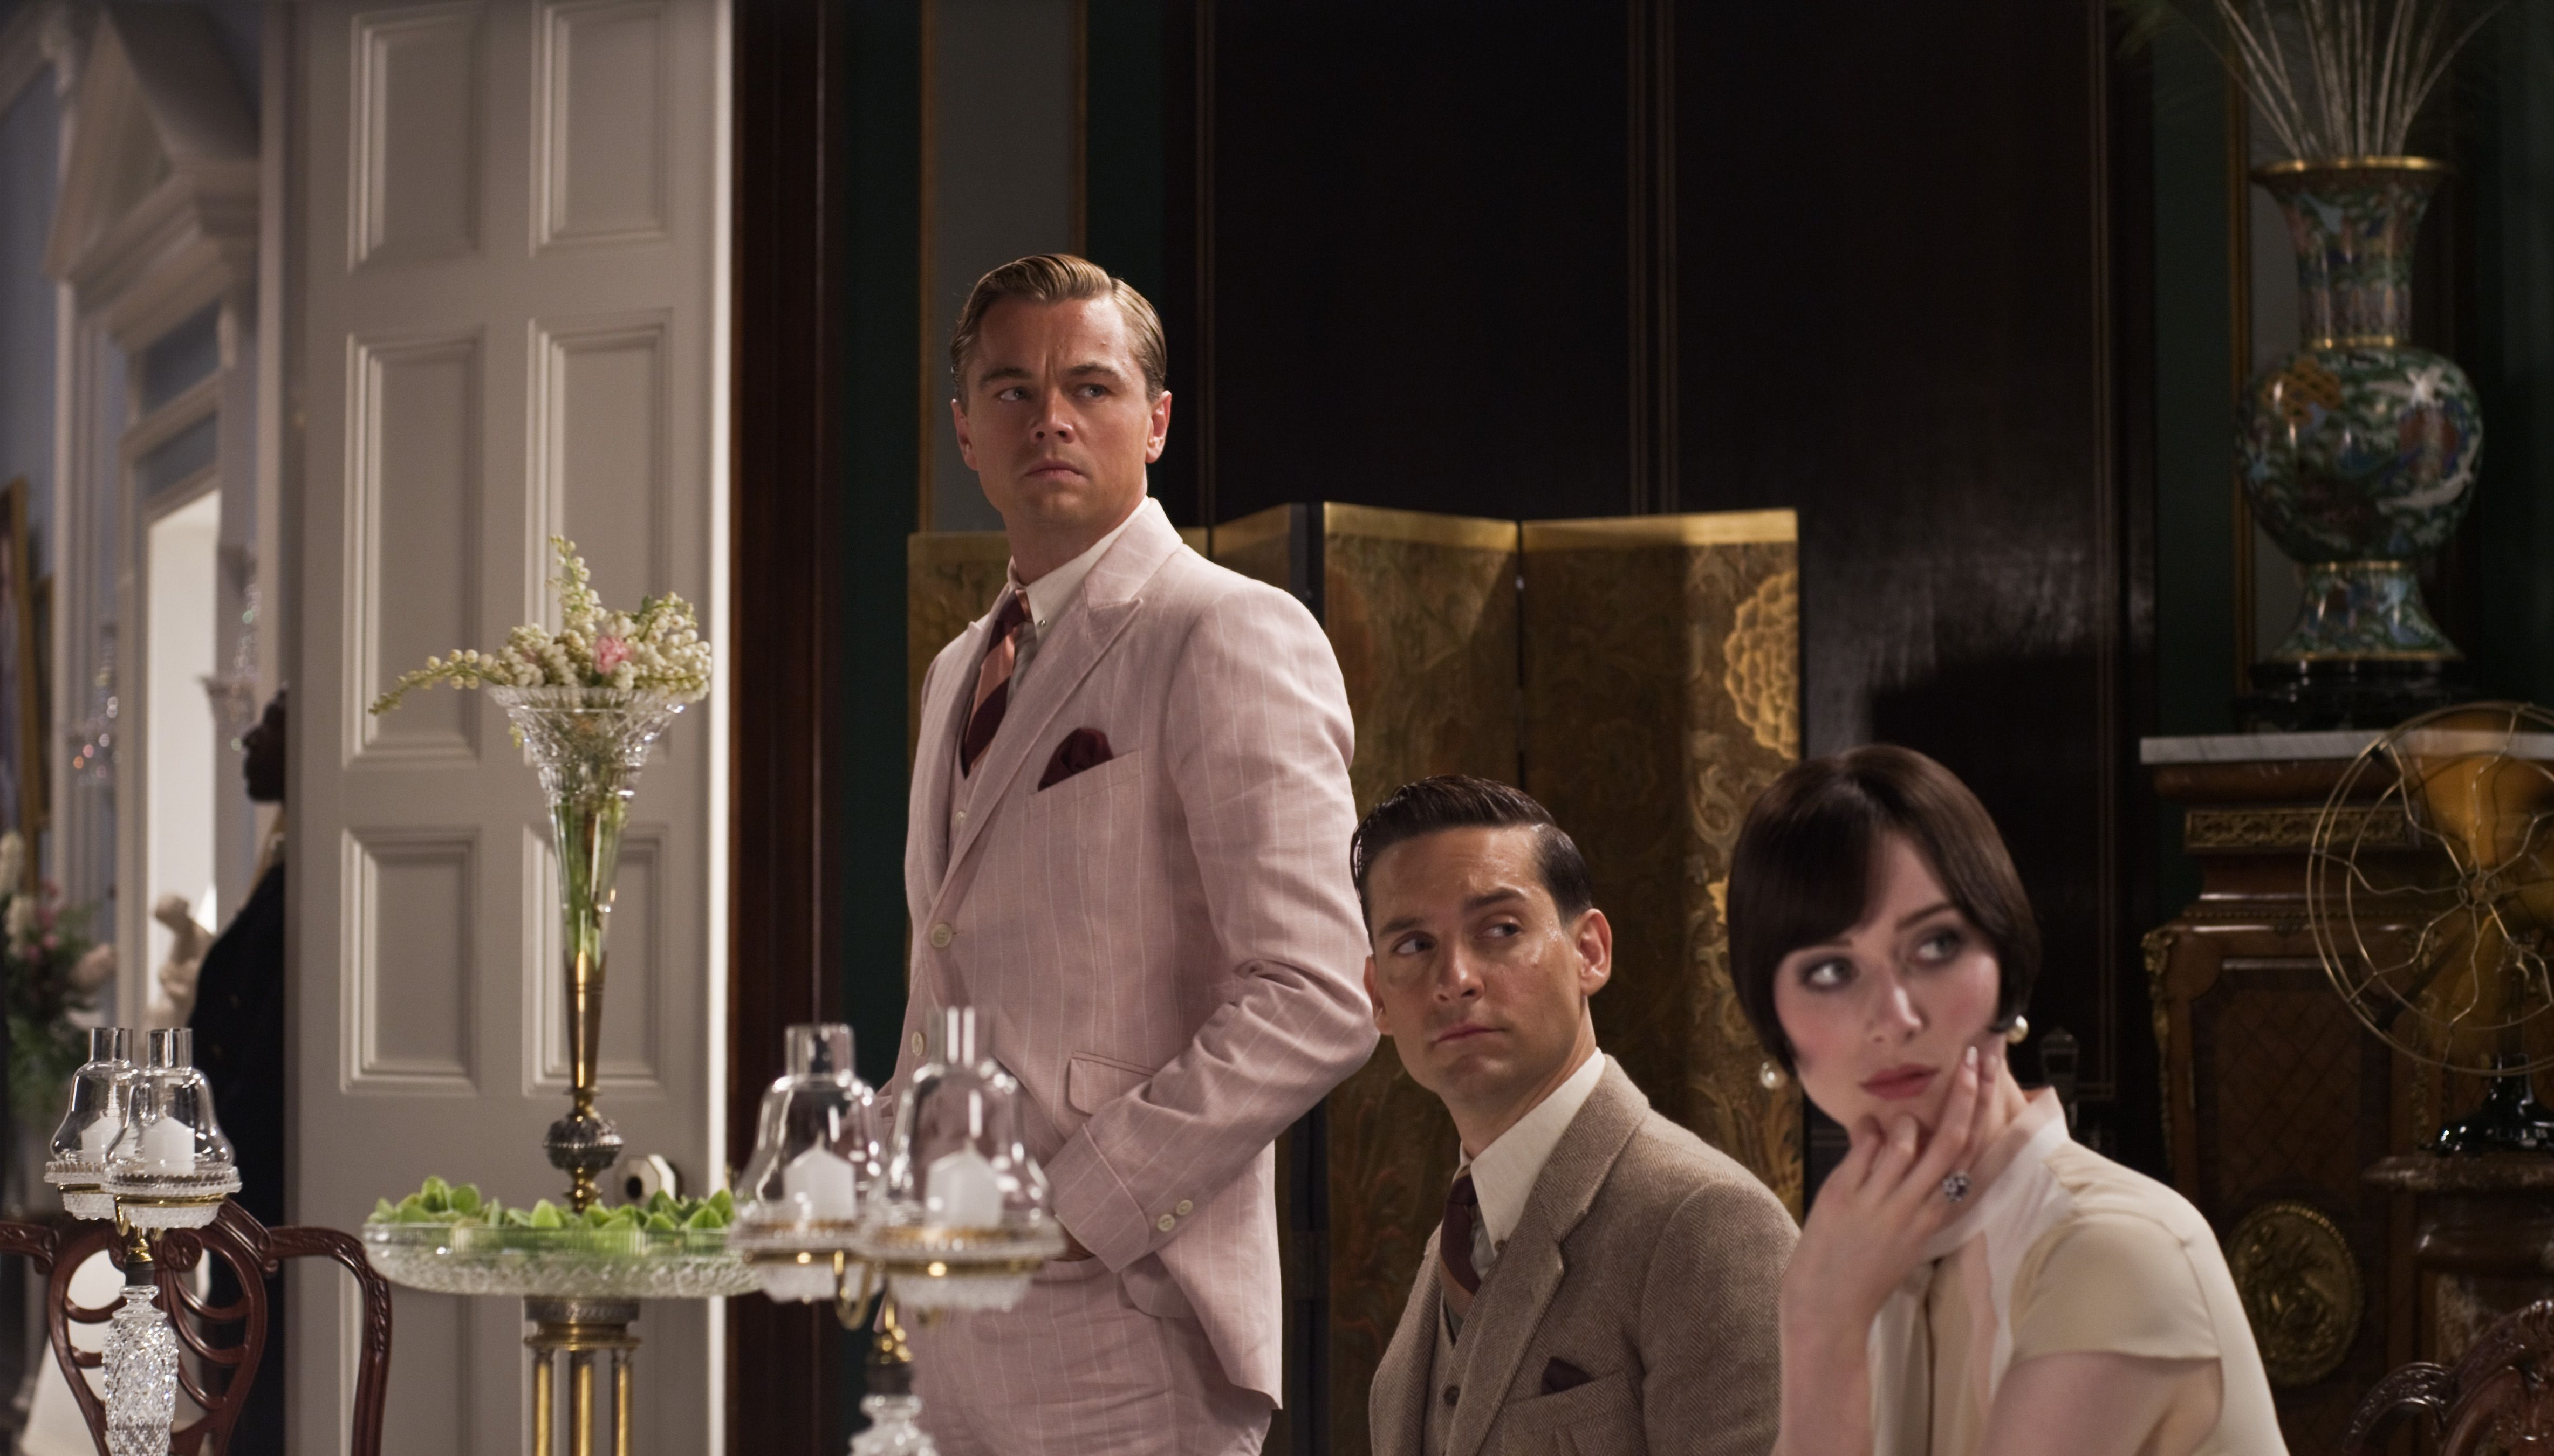 The different views on the american dream by nick carraway and jay gatsby